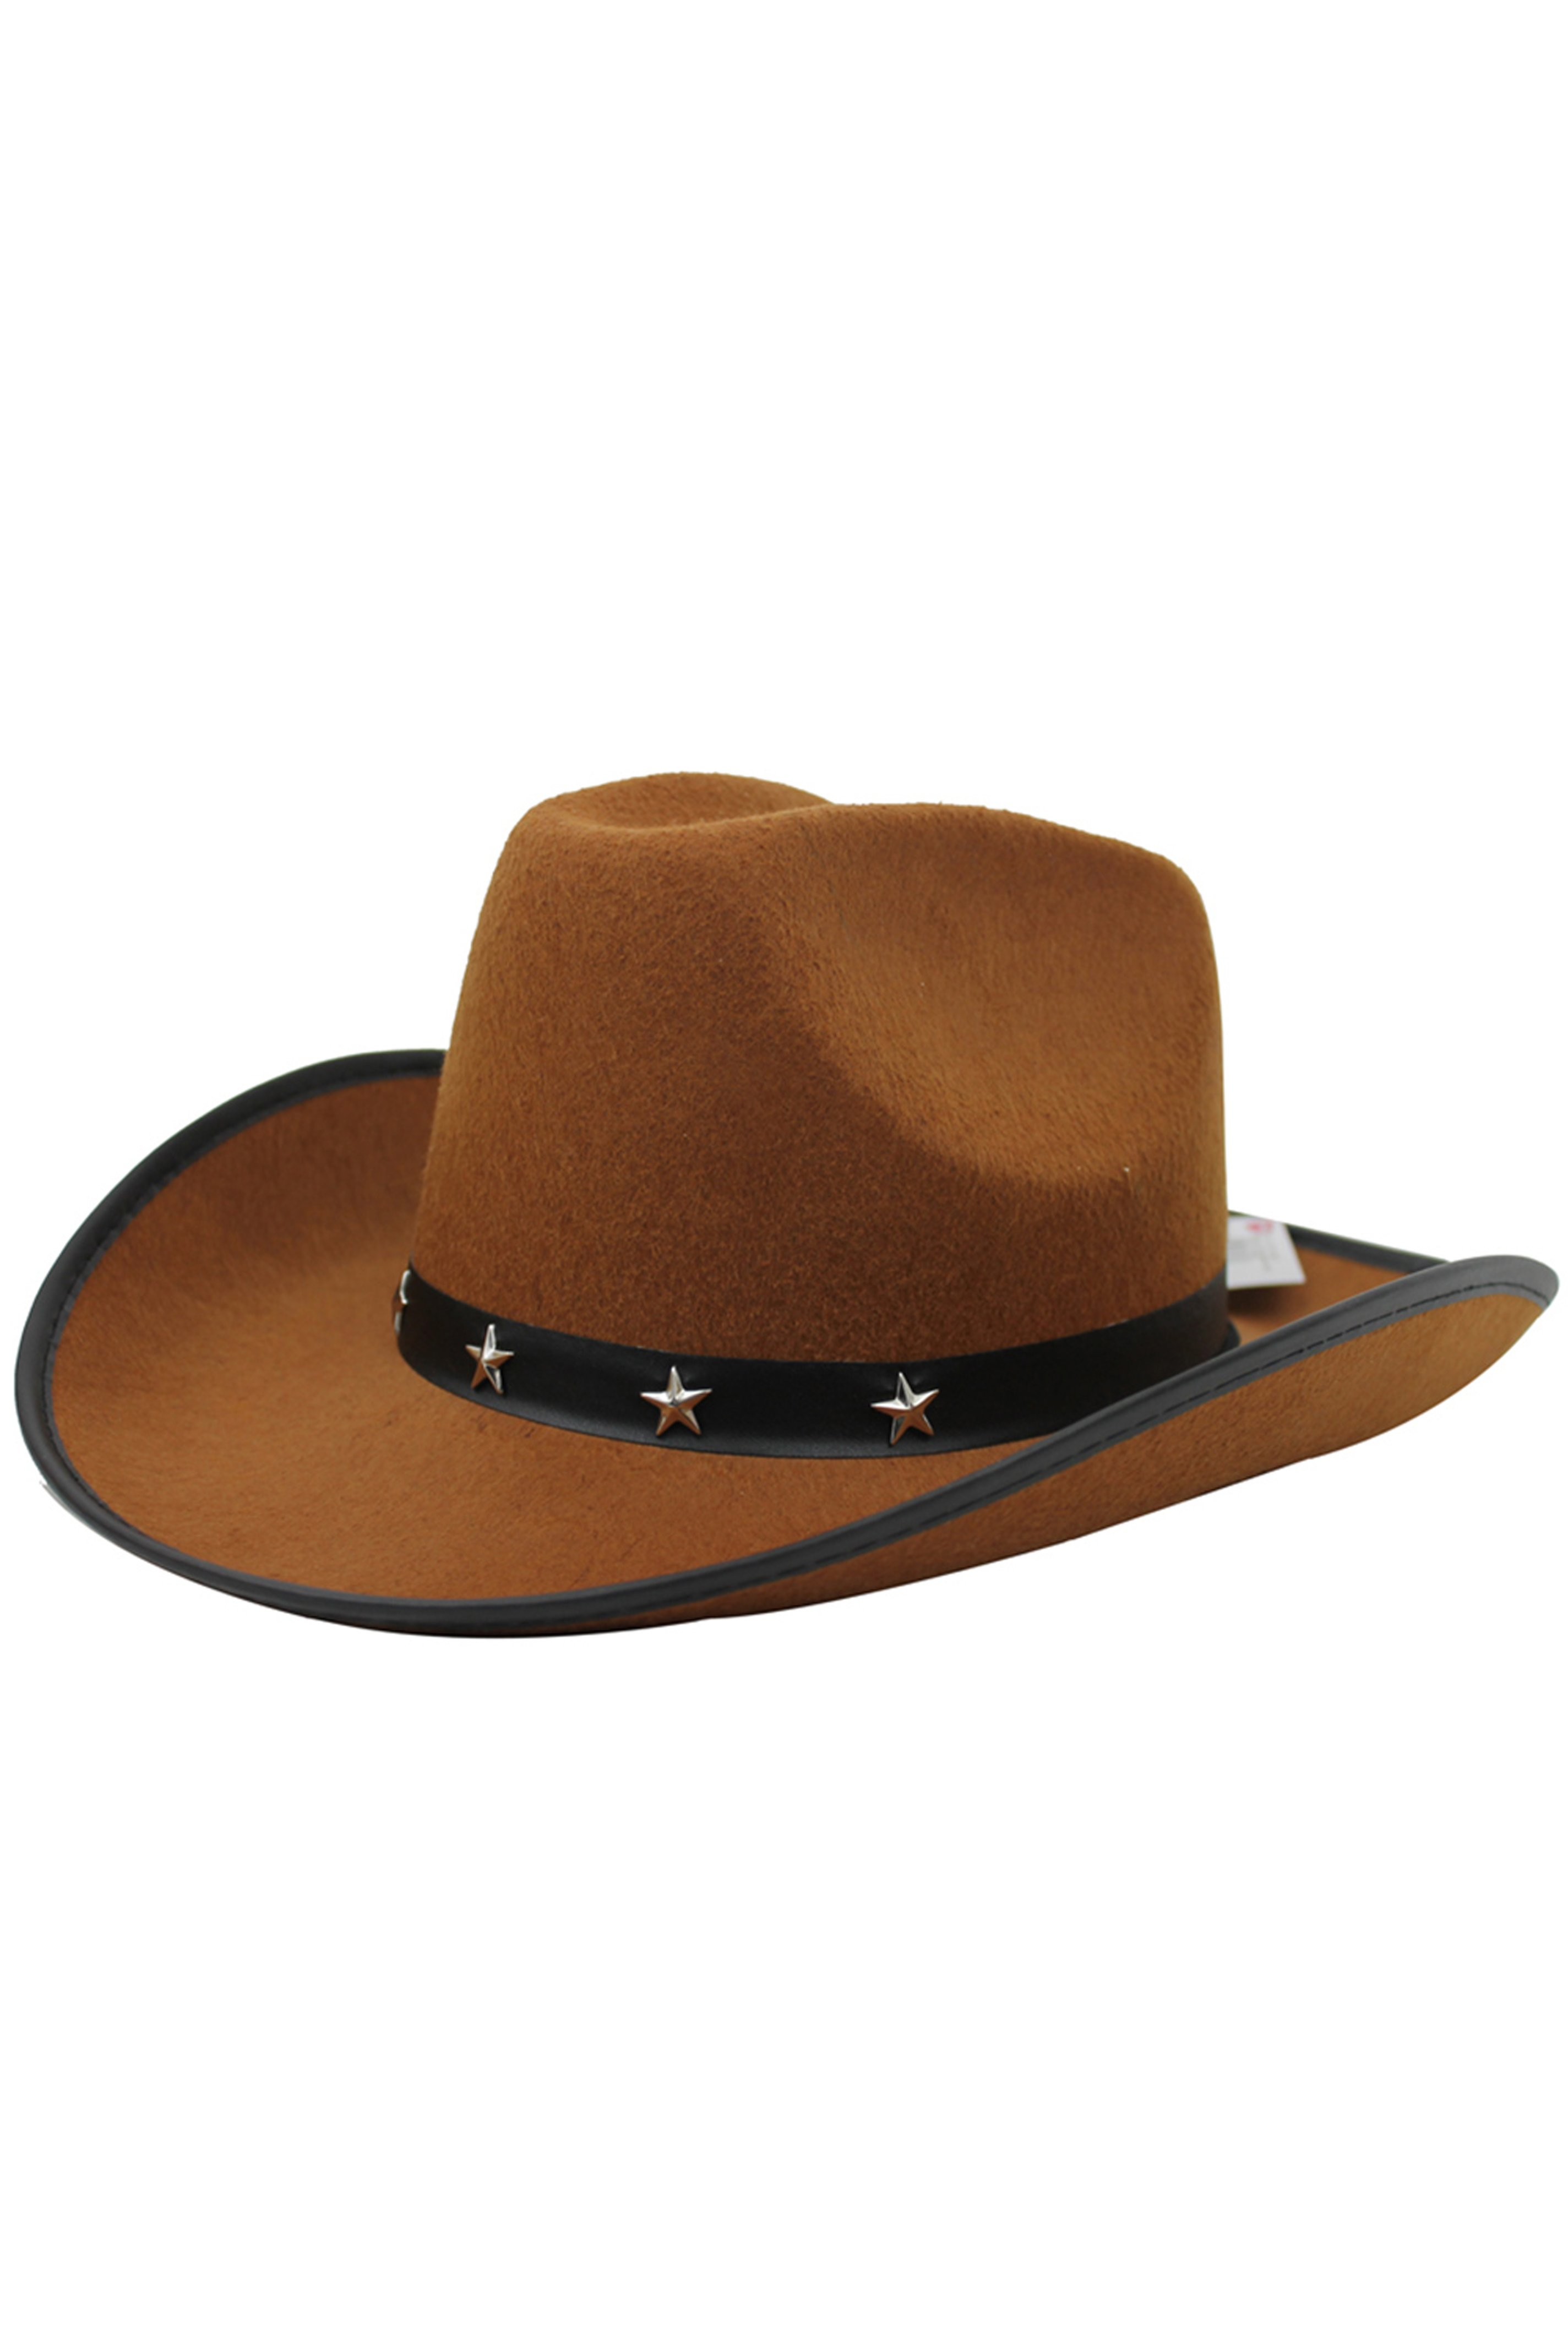 Brown Star Studded Cowboy Hat - I Love Fancy Dress 5a193c5311e9